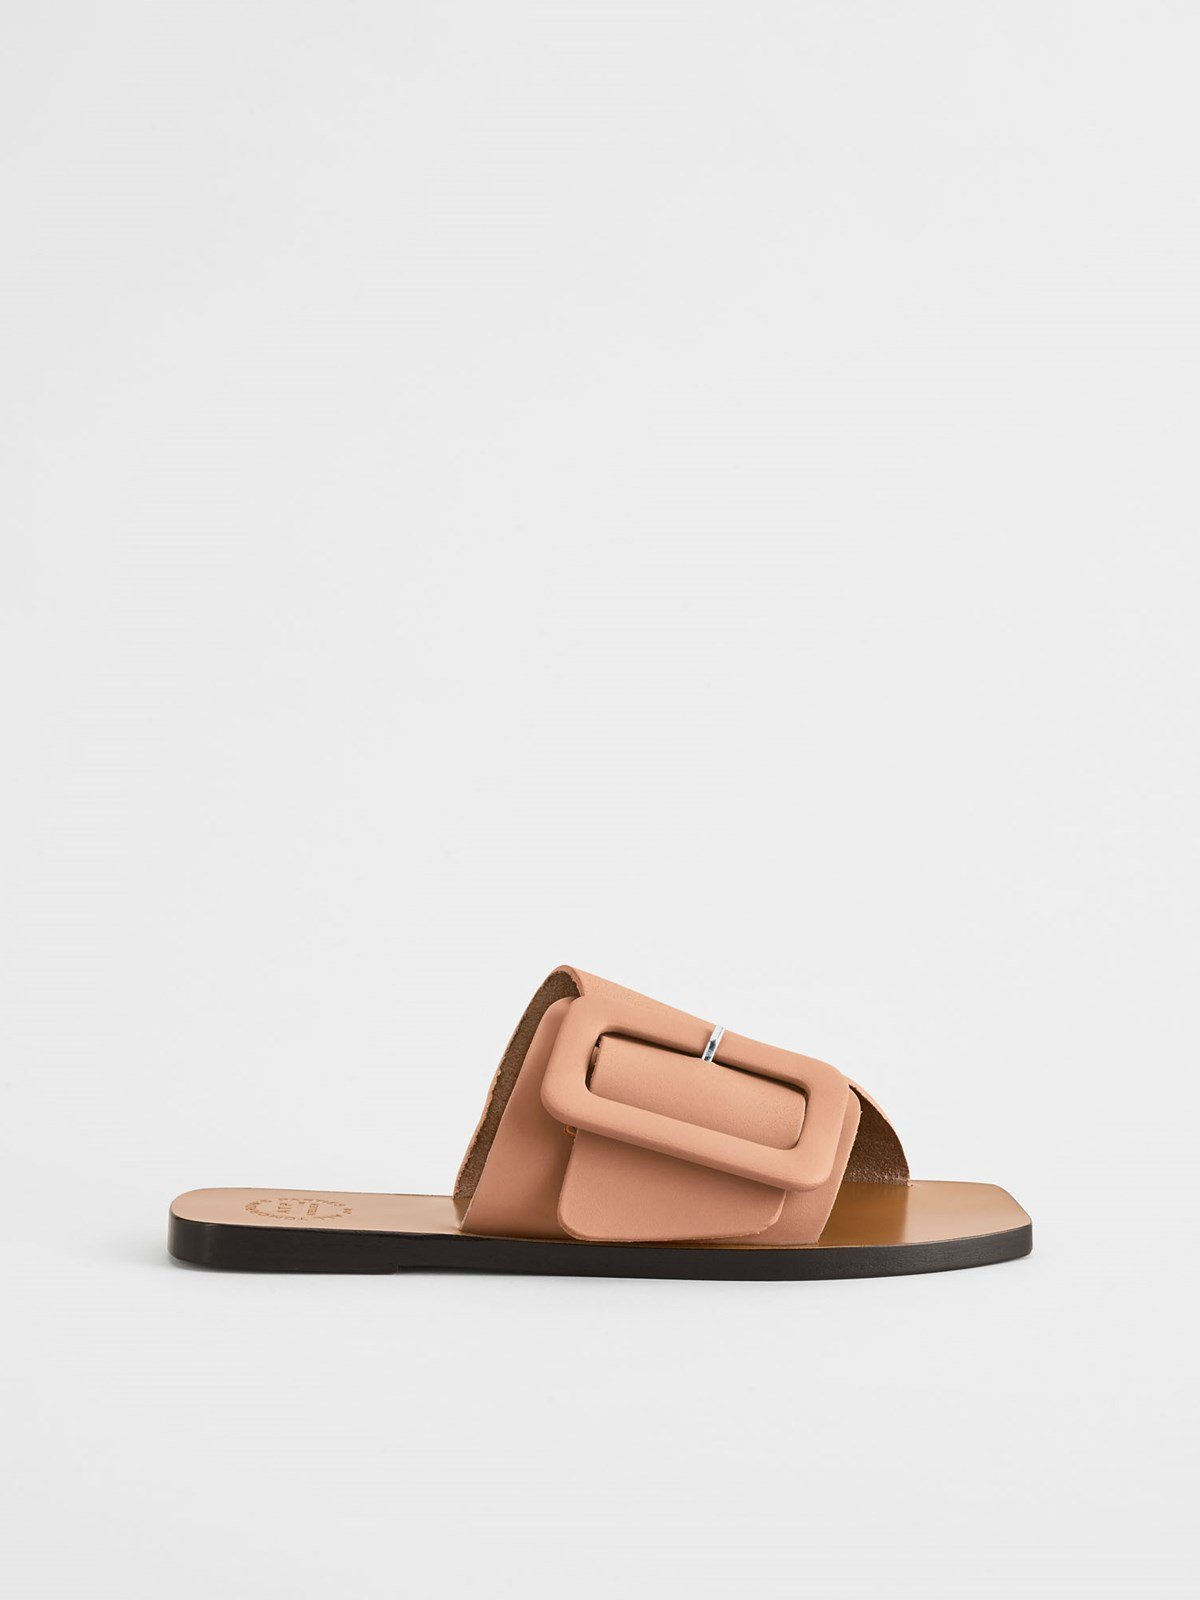 Ceci Honeynut Flat sandals